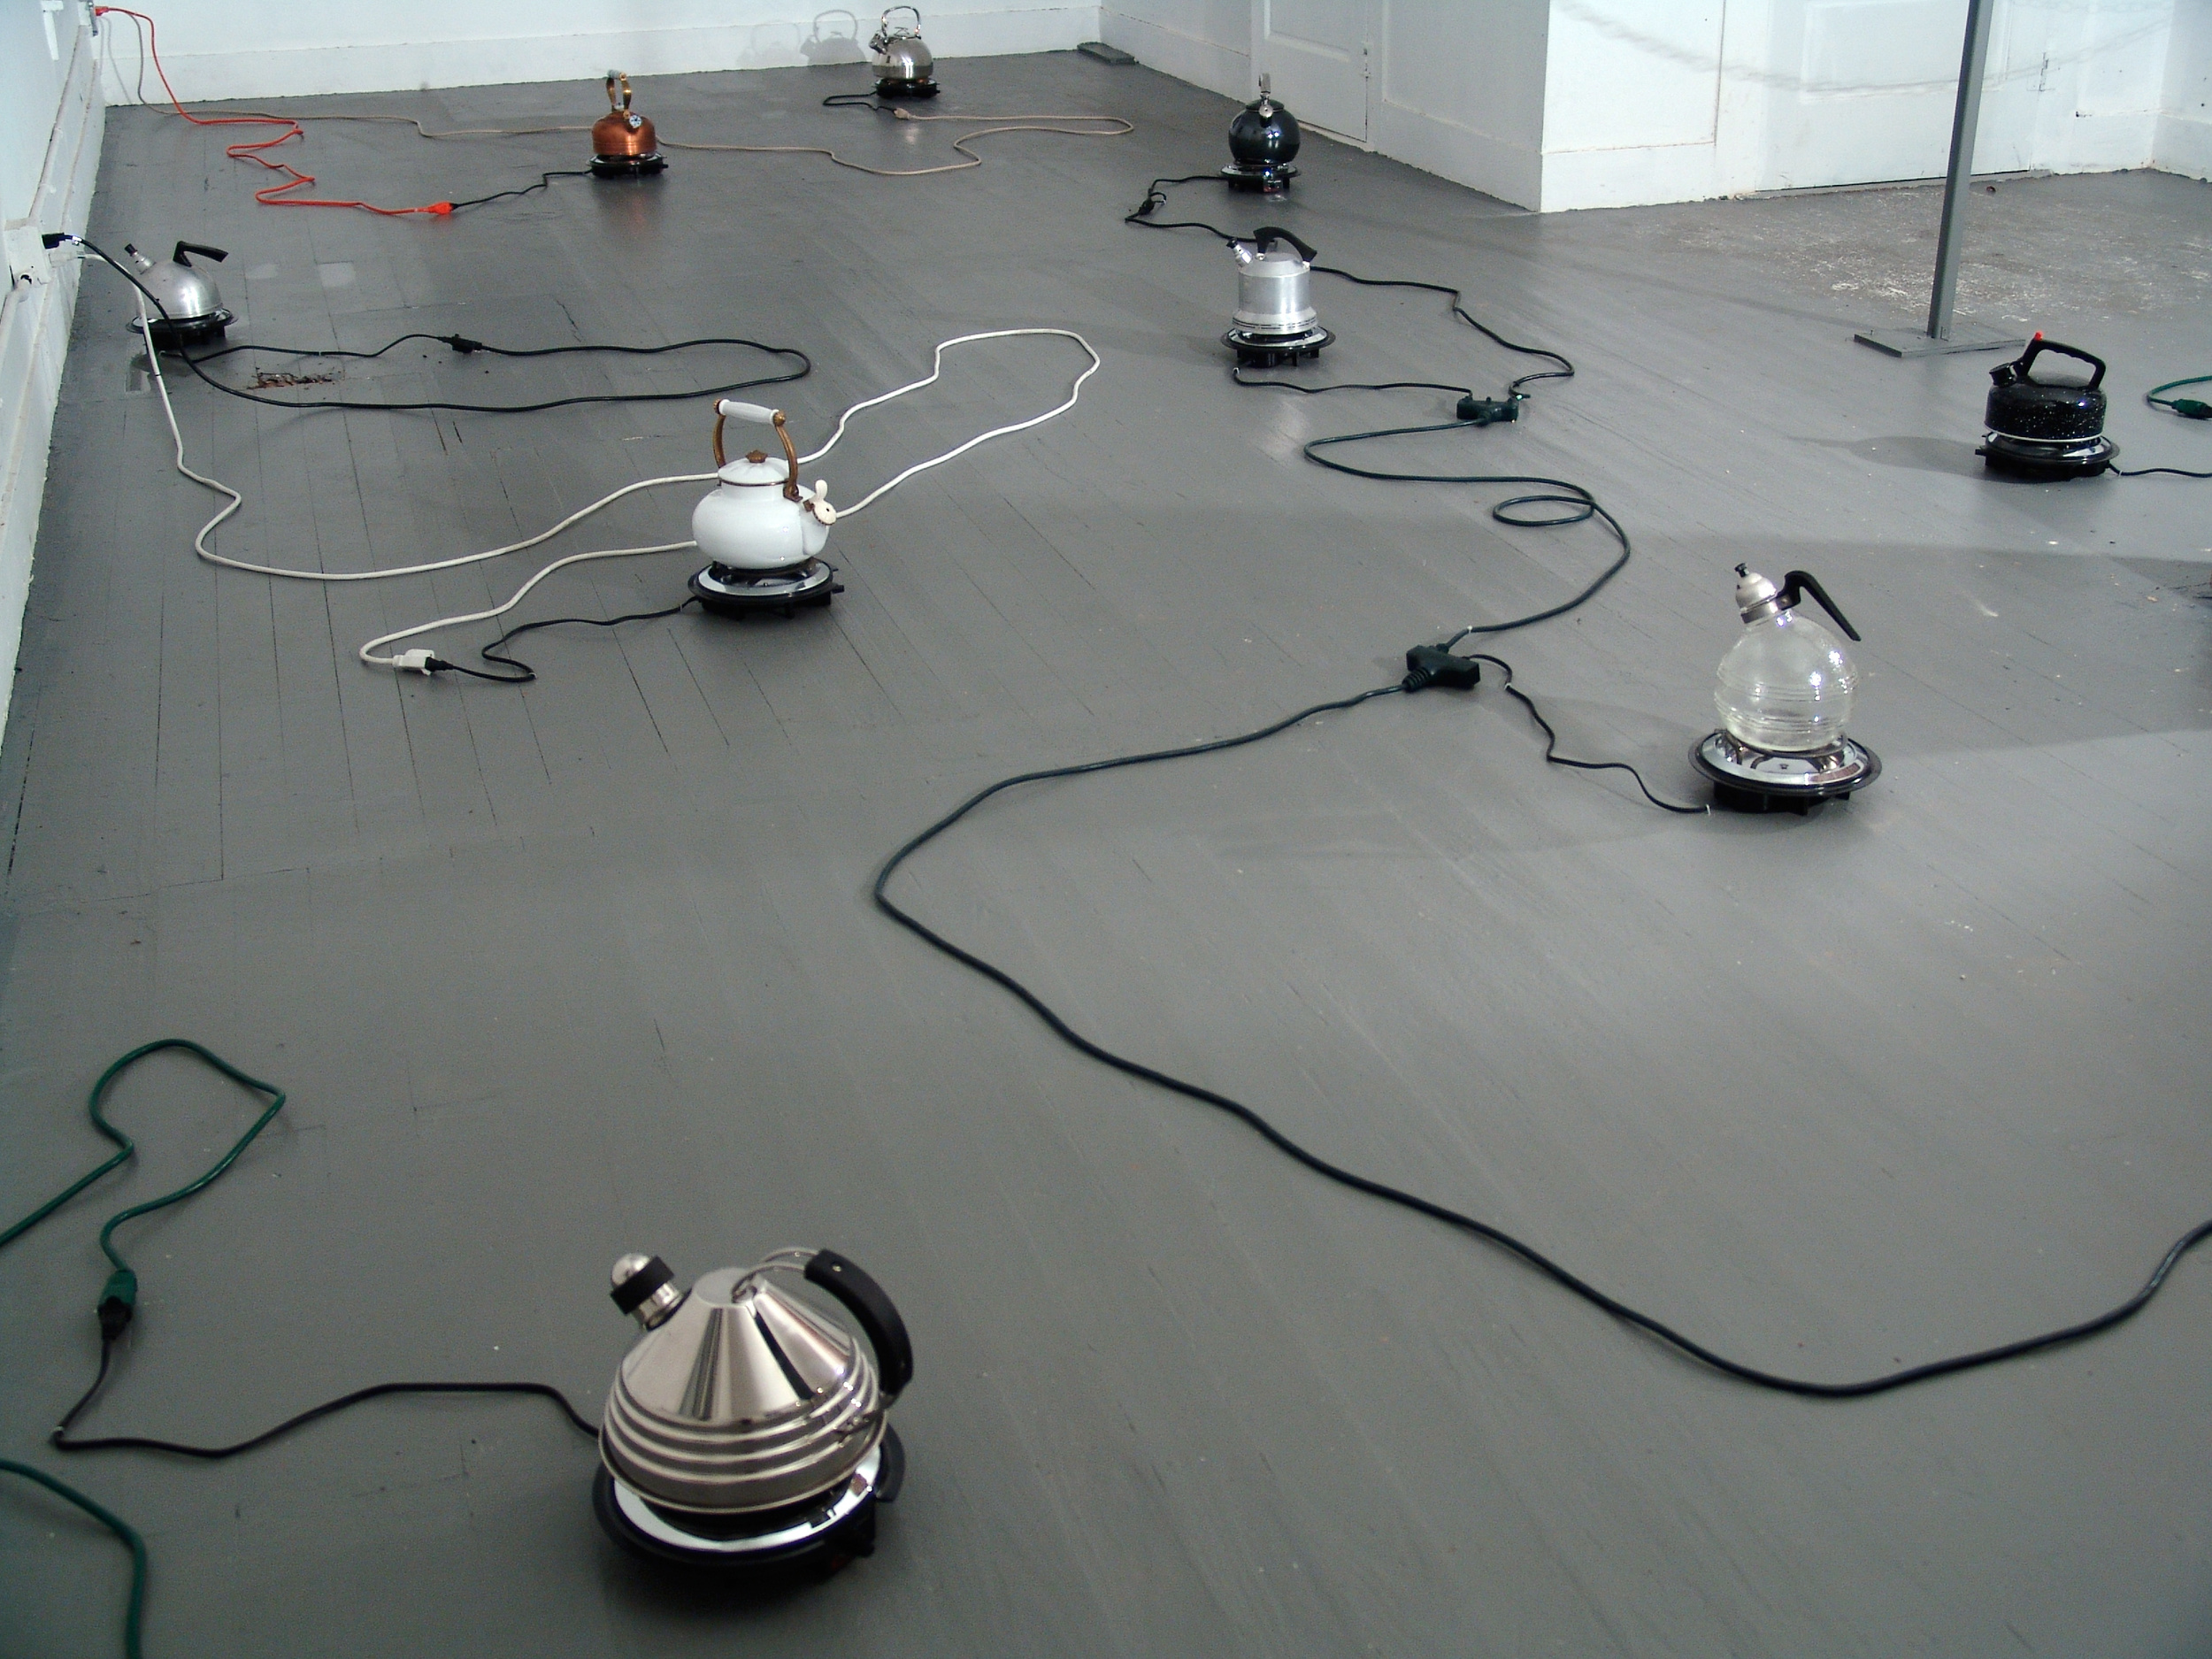 Conductor,   2004  whistling kettles, hot plates, electrical chords, water, steam  Installed at Project Row Houses, TX